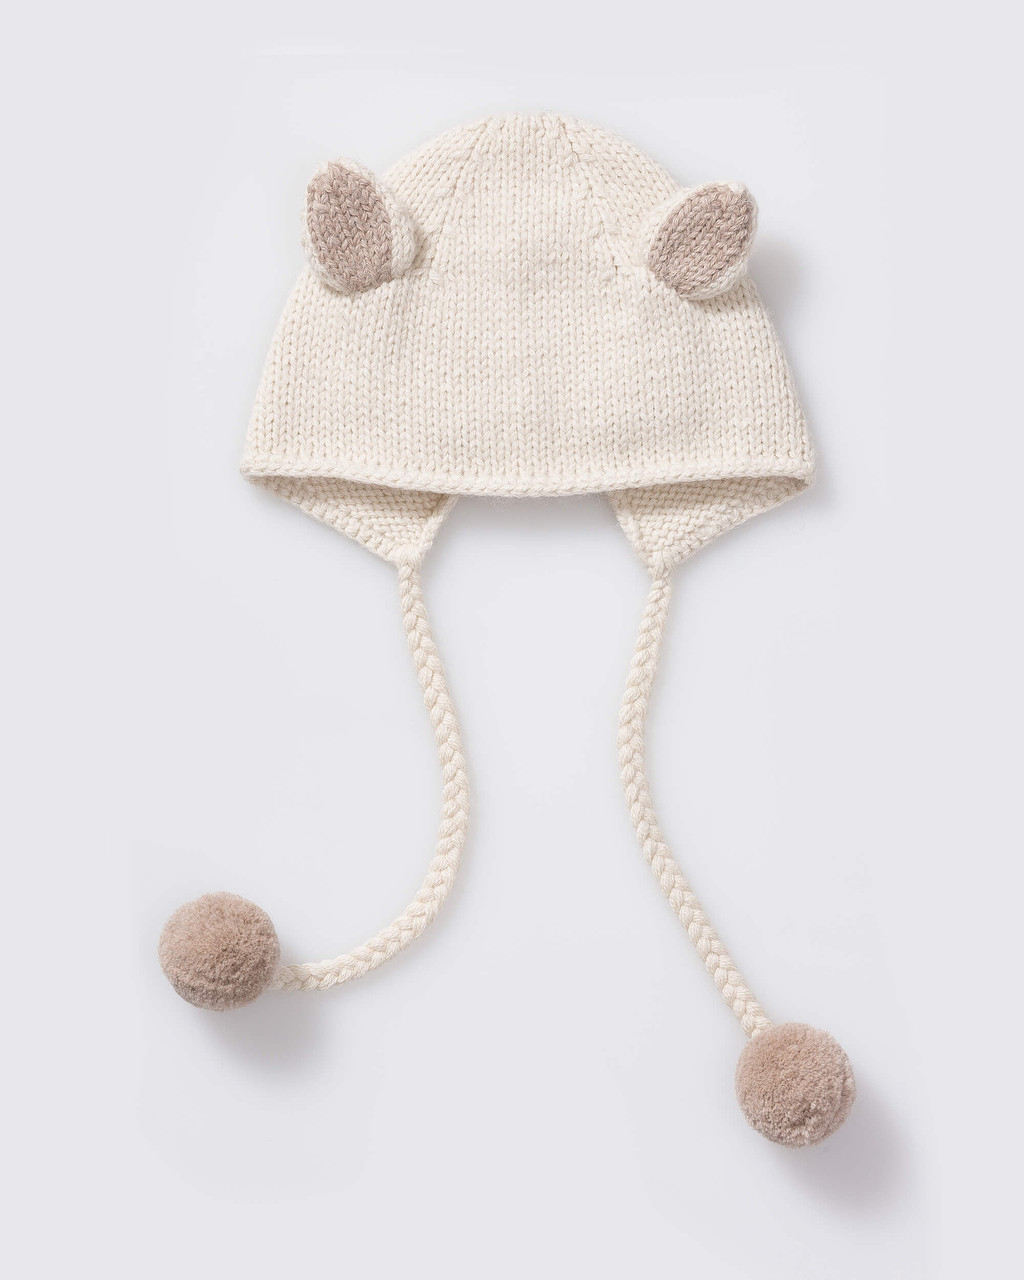 Alicia Adams Alpaca Bunny Hat, alpaca baby clothes, baby alpaca hat, alpaca clothing kids, alpaca winter hats, ivory and taupe alpaca baby hat